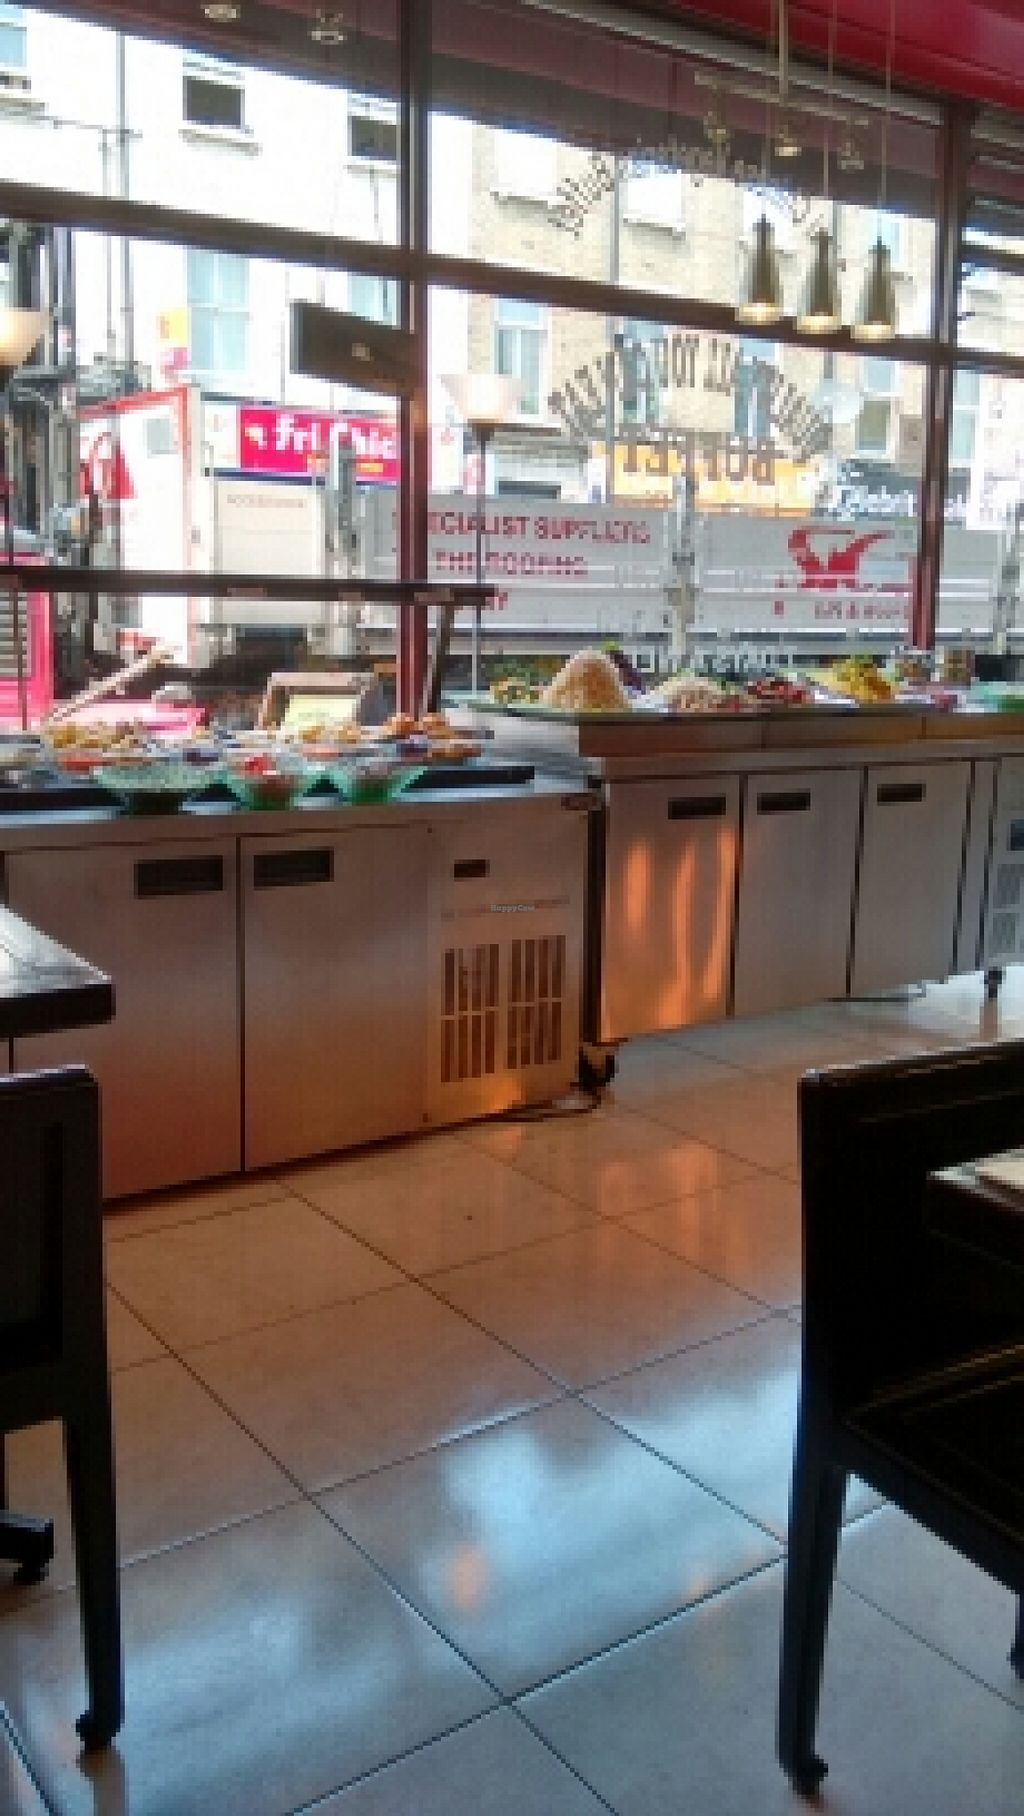 "Photo of Dou Dou - Qing Buffet  by <a href=""/members/profile/craigmc"">craigmc</a> <br/>buffet <br/> May 16, 2016  - <a href='/contact/abuse/image/701/149289'>Report</a>"